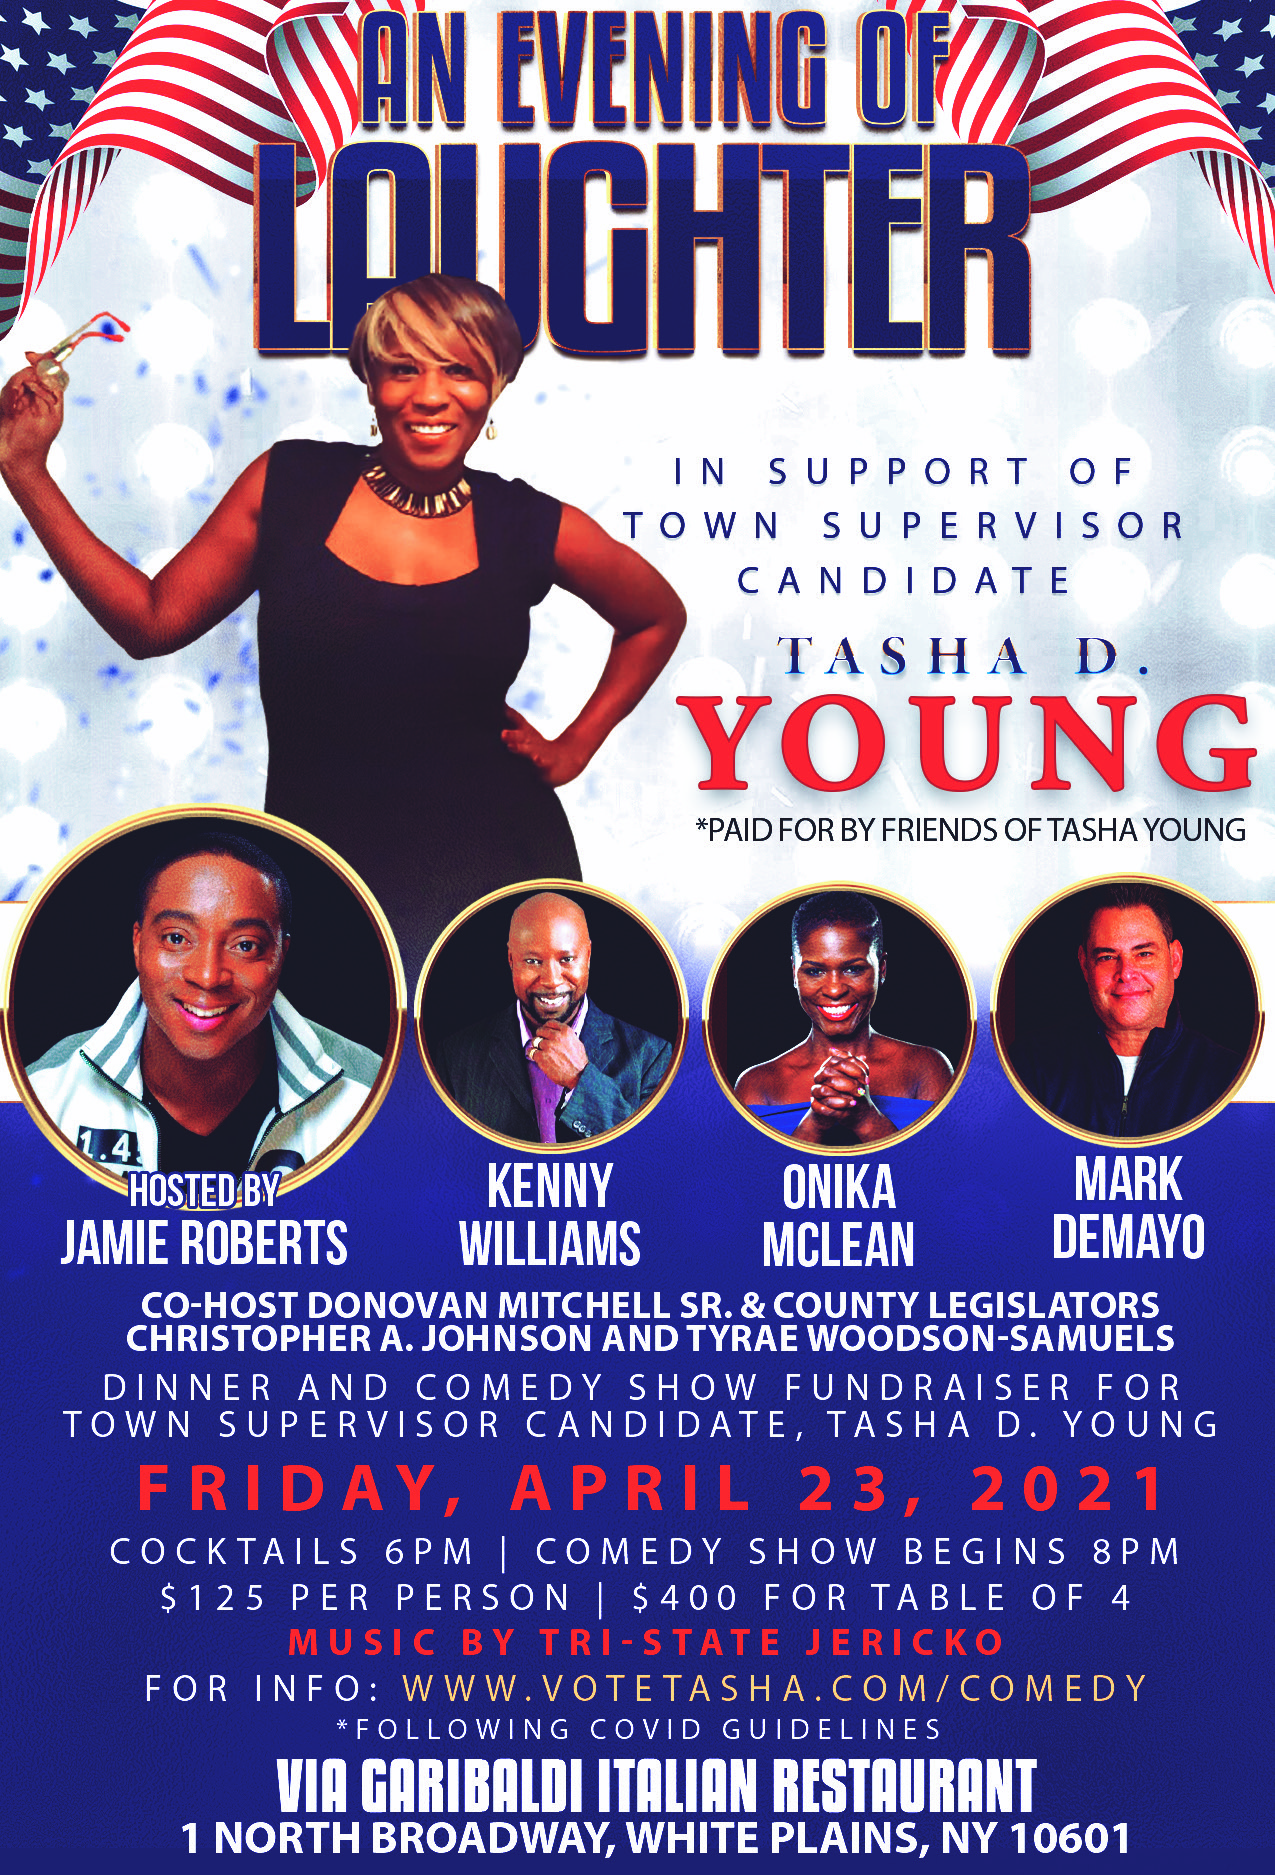 An Evening of Laughter fundraiser for Tasha D. Young for Greenburgh is on April 21, 6pm, at Via Garibaldi in White Plains